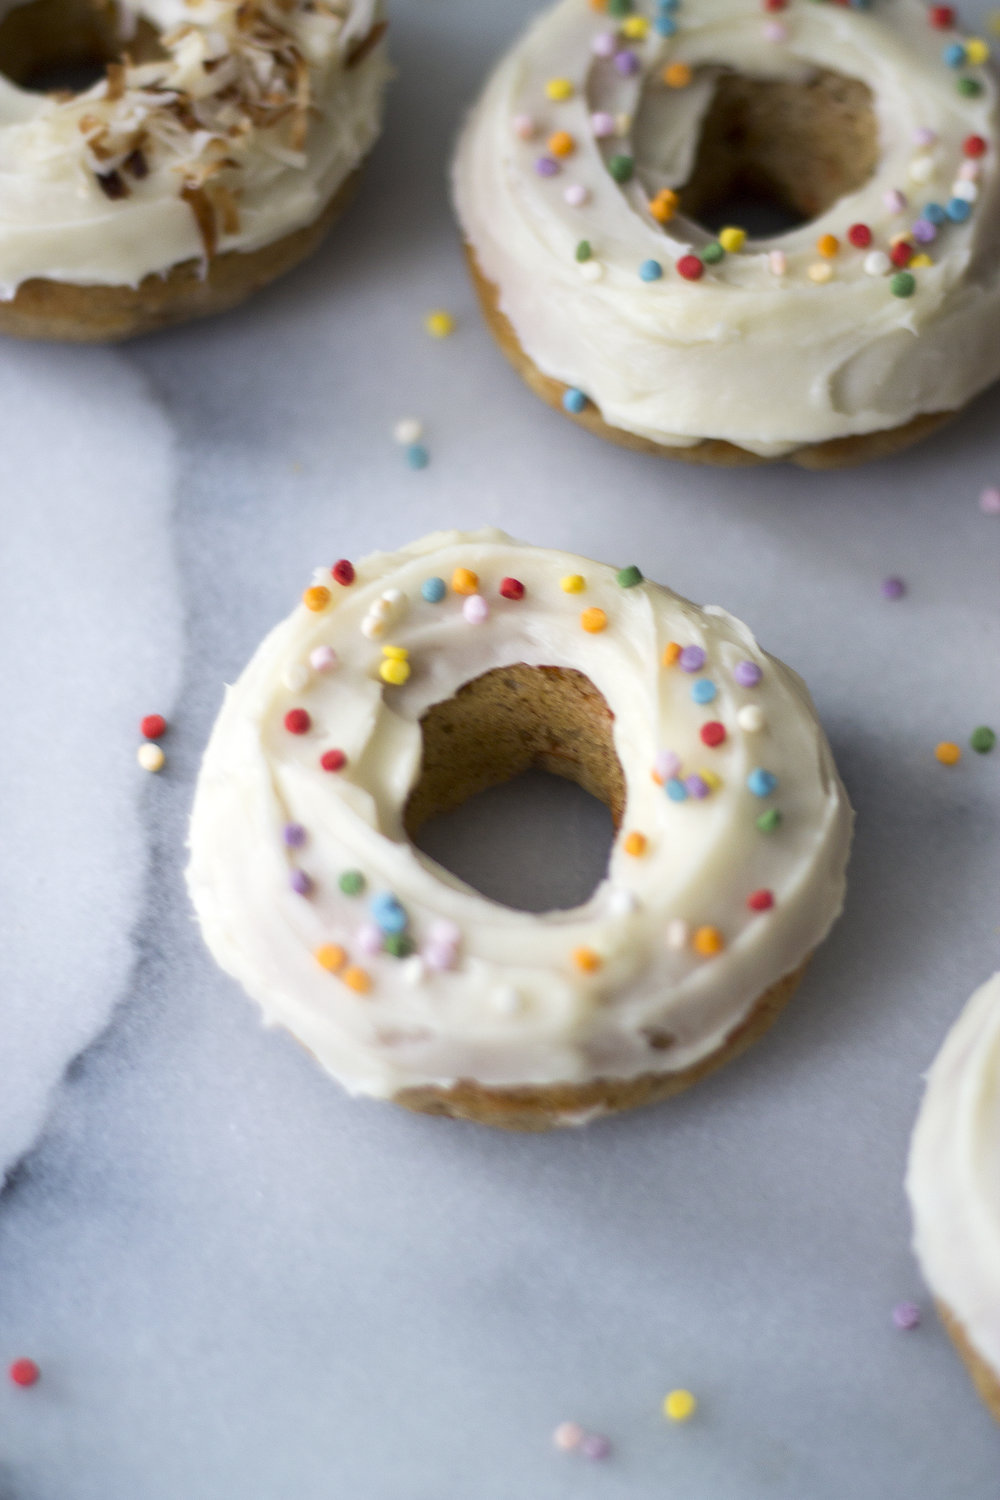 Topped with either toasted coconut or rainbow sprinkles, these Baked Carrot Cake Donuts are the perfect springtime treat. Get the recipe: unusuallylovely.com